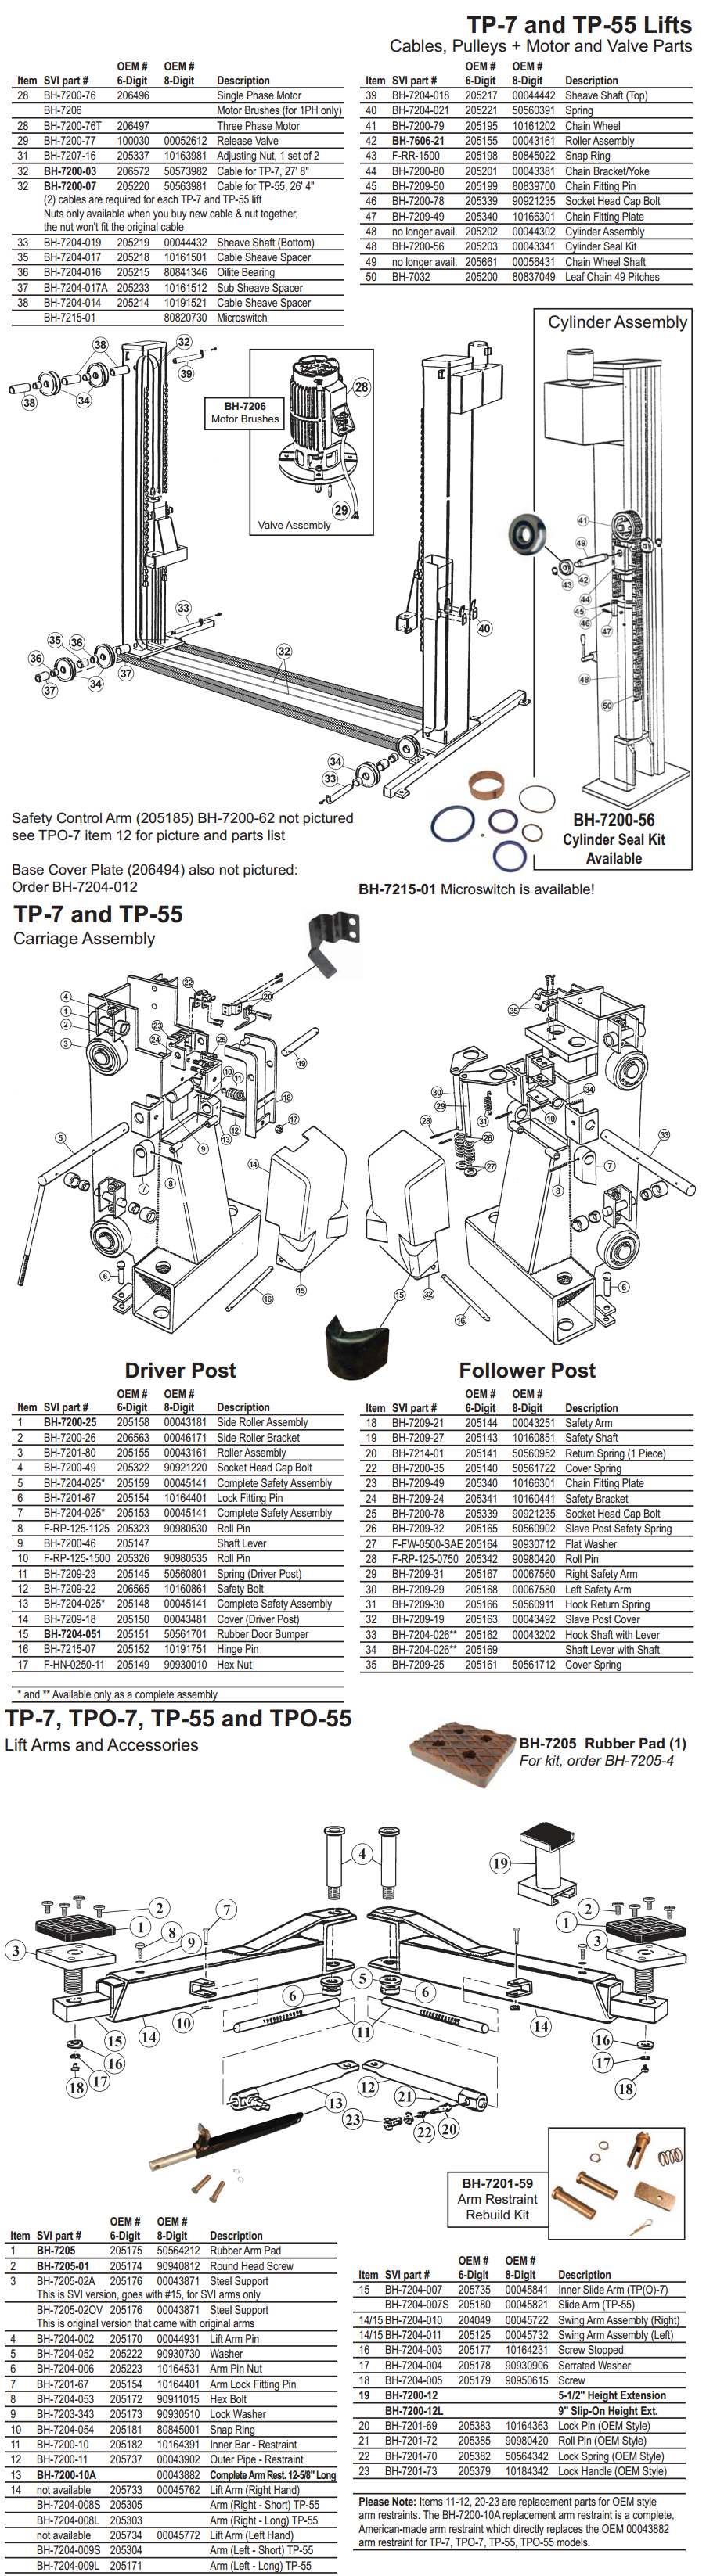 Benwil Lift Wiring Diagram 26 Images Bruno Tp 7 55 Parts For Tp7 At Highcare